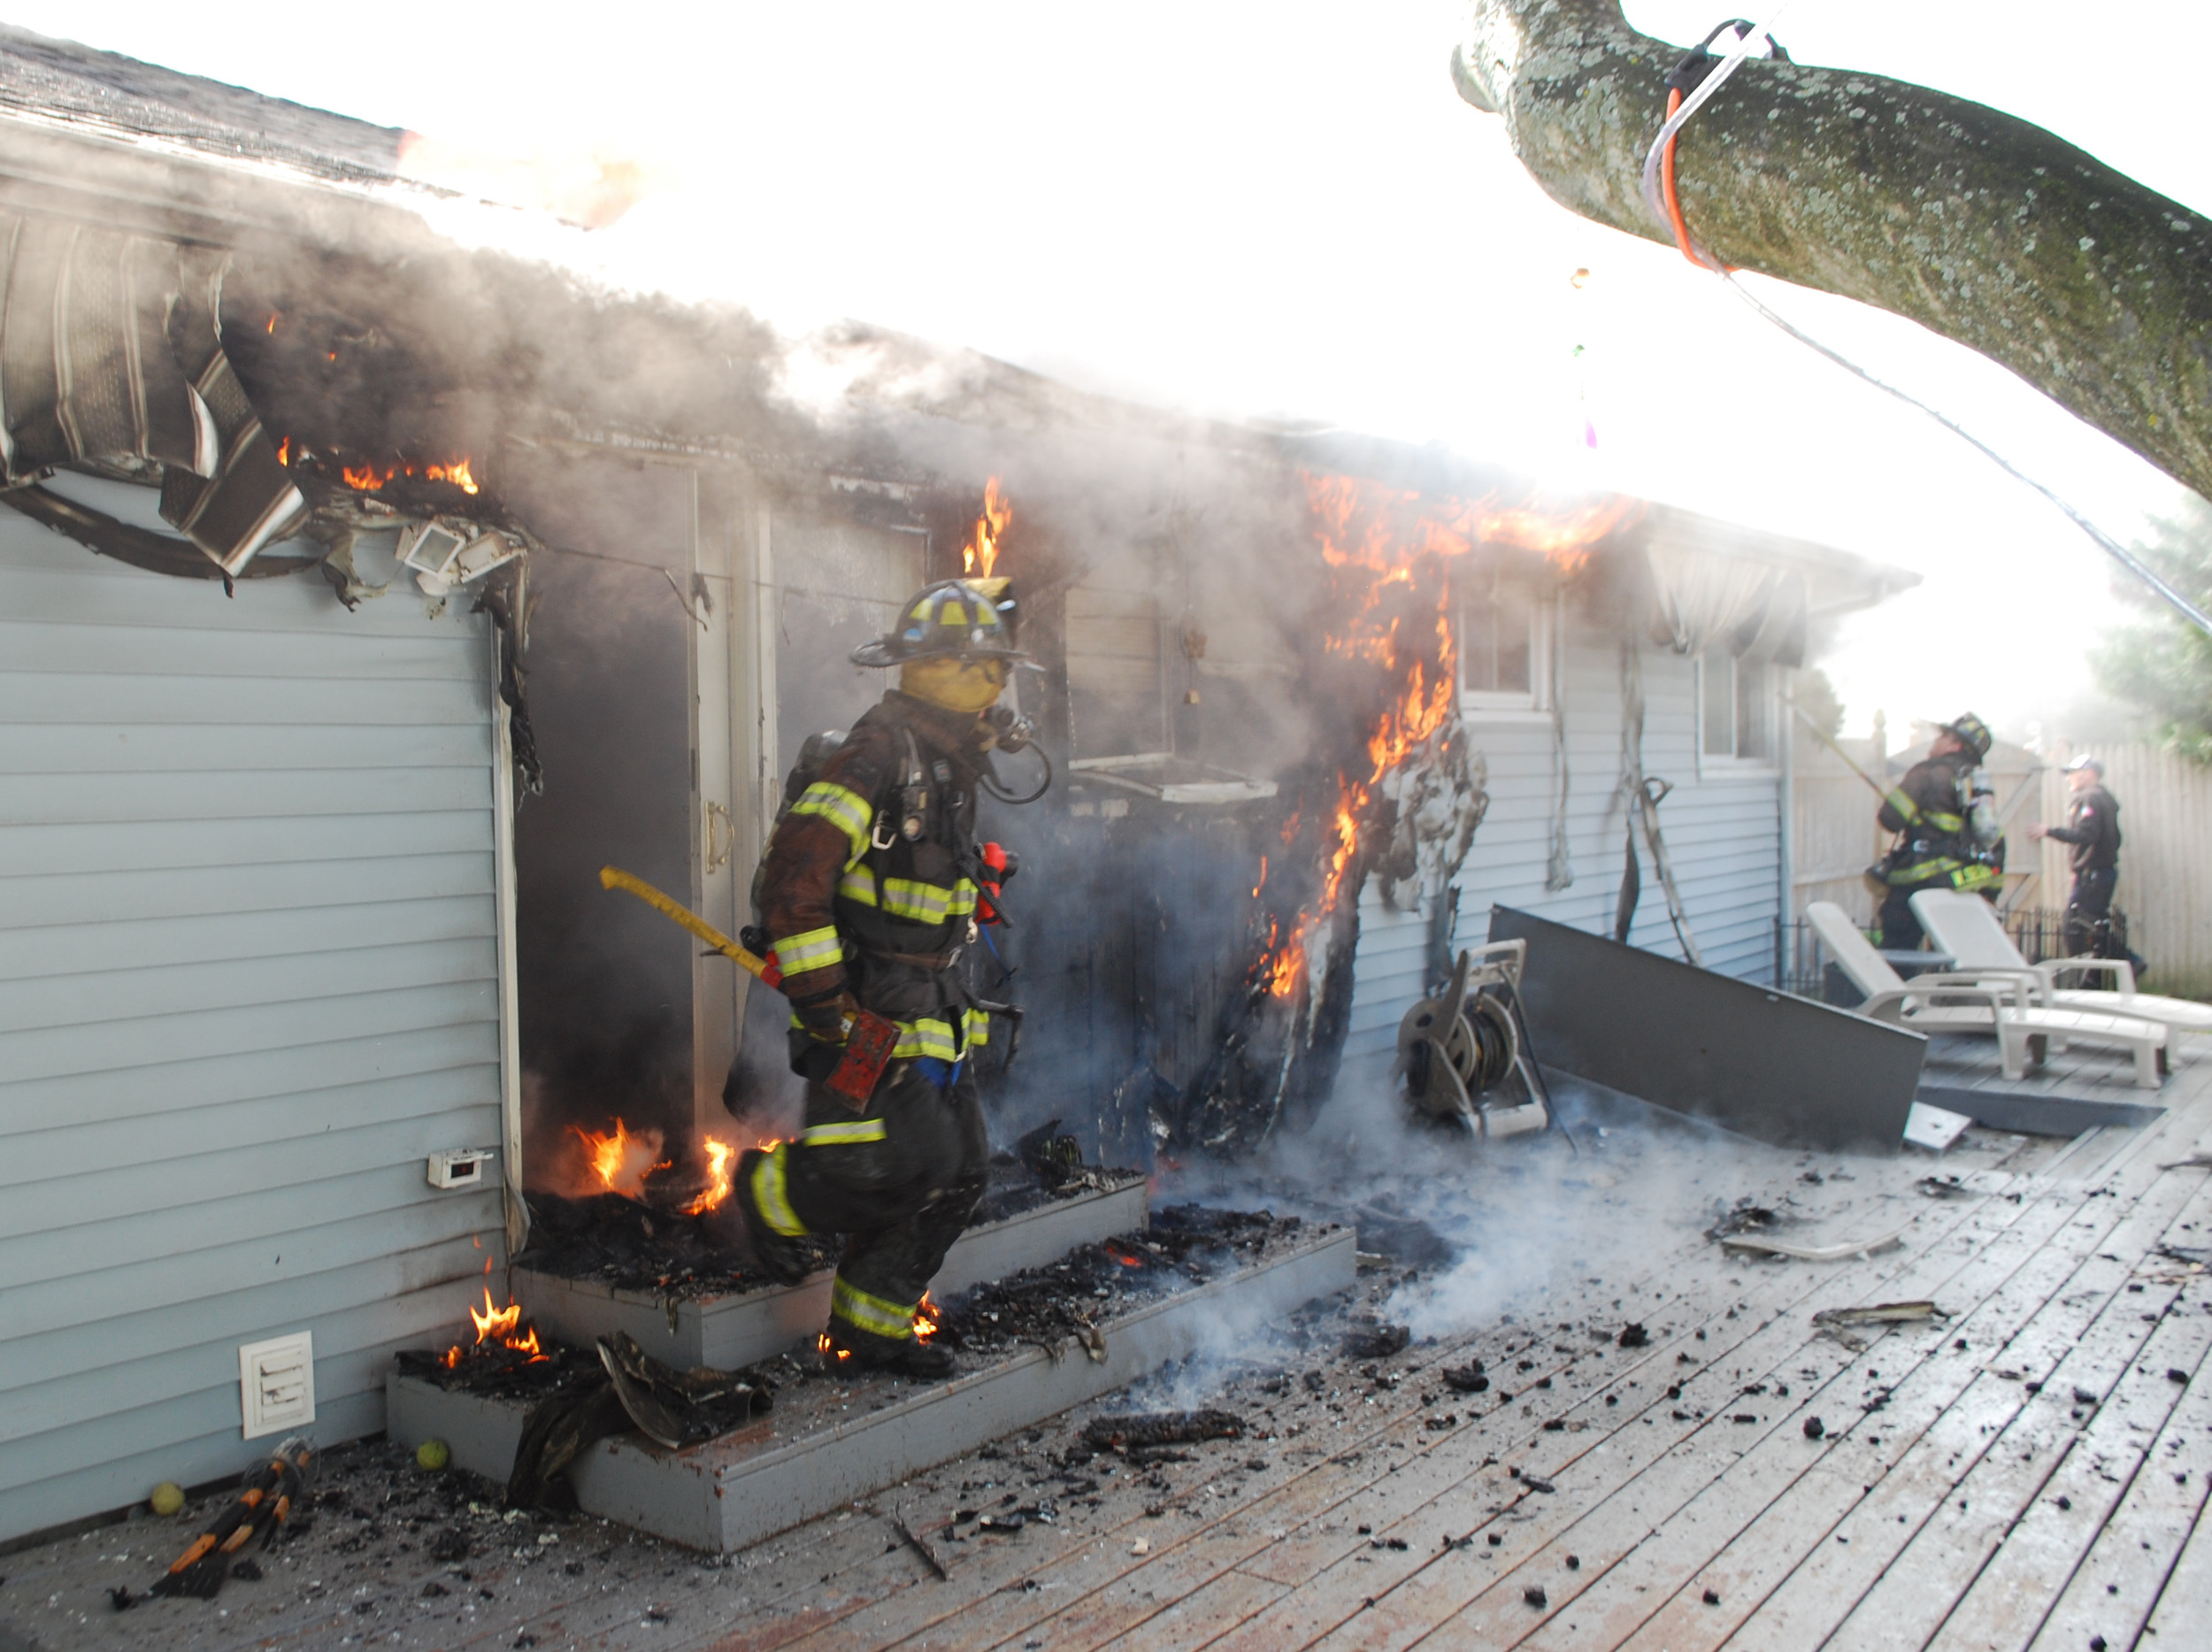 The blaze at the Consentino house began toward their back porch and spread up the back of their house, said Chris Fasano, the North Merrick Fire Department's second assistant chief.